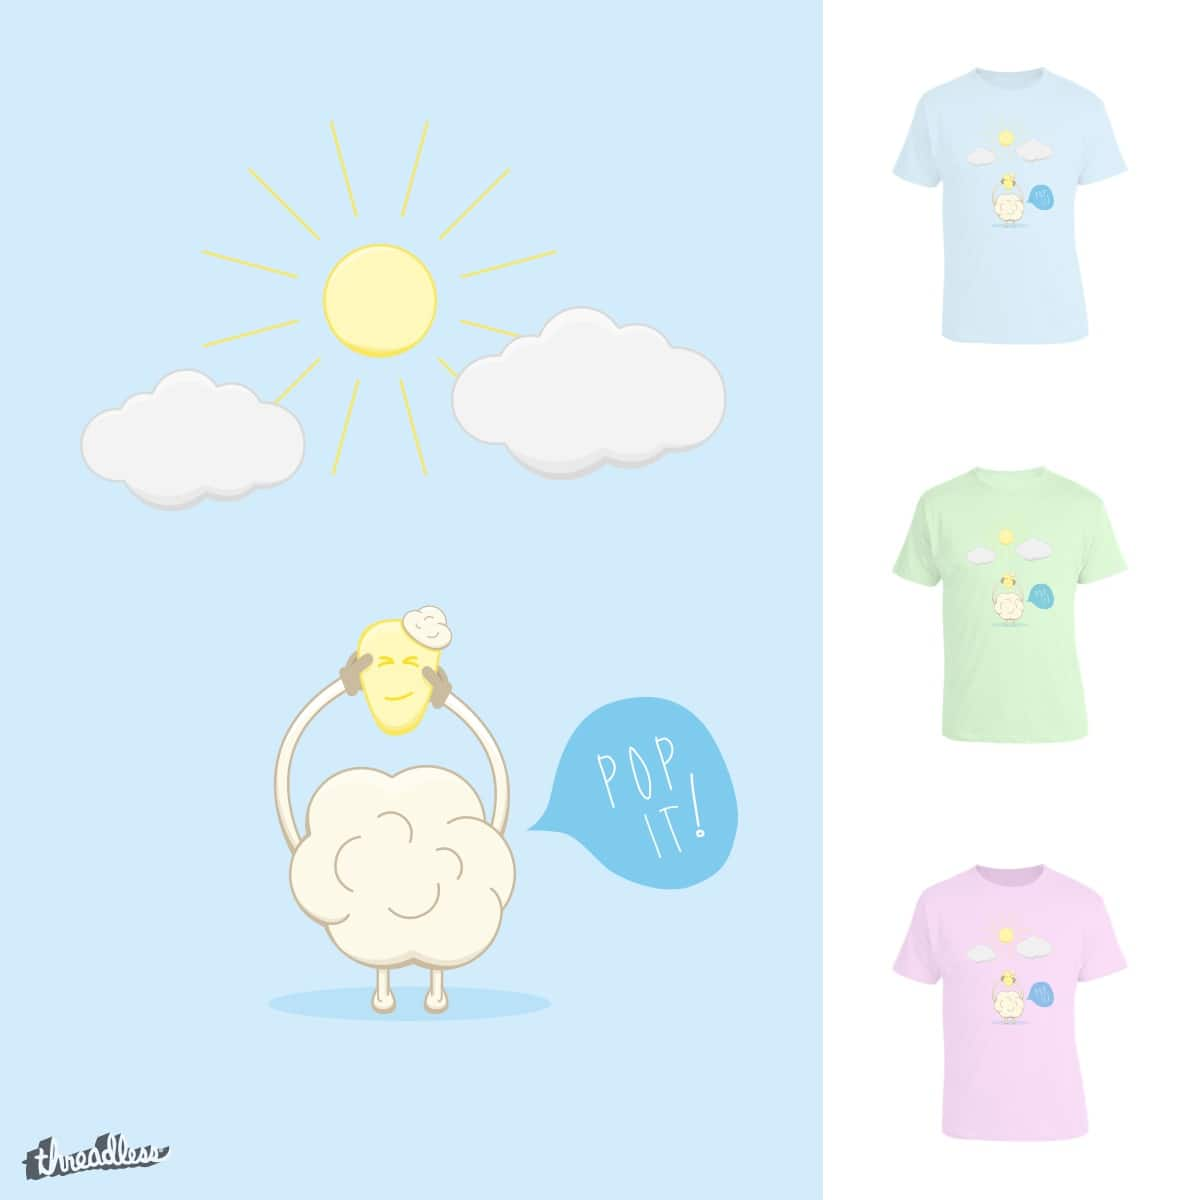 Born To Pop by imbb86 on Threadless